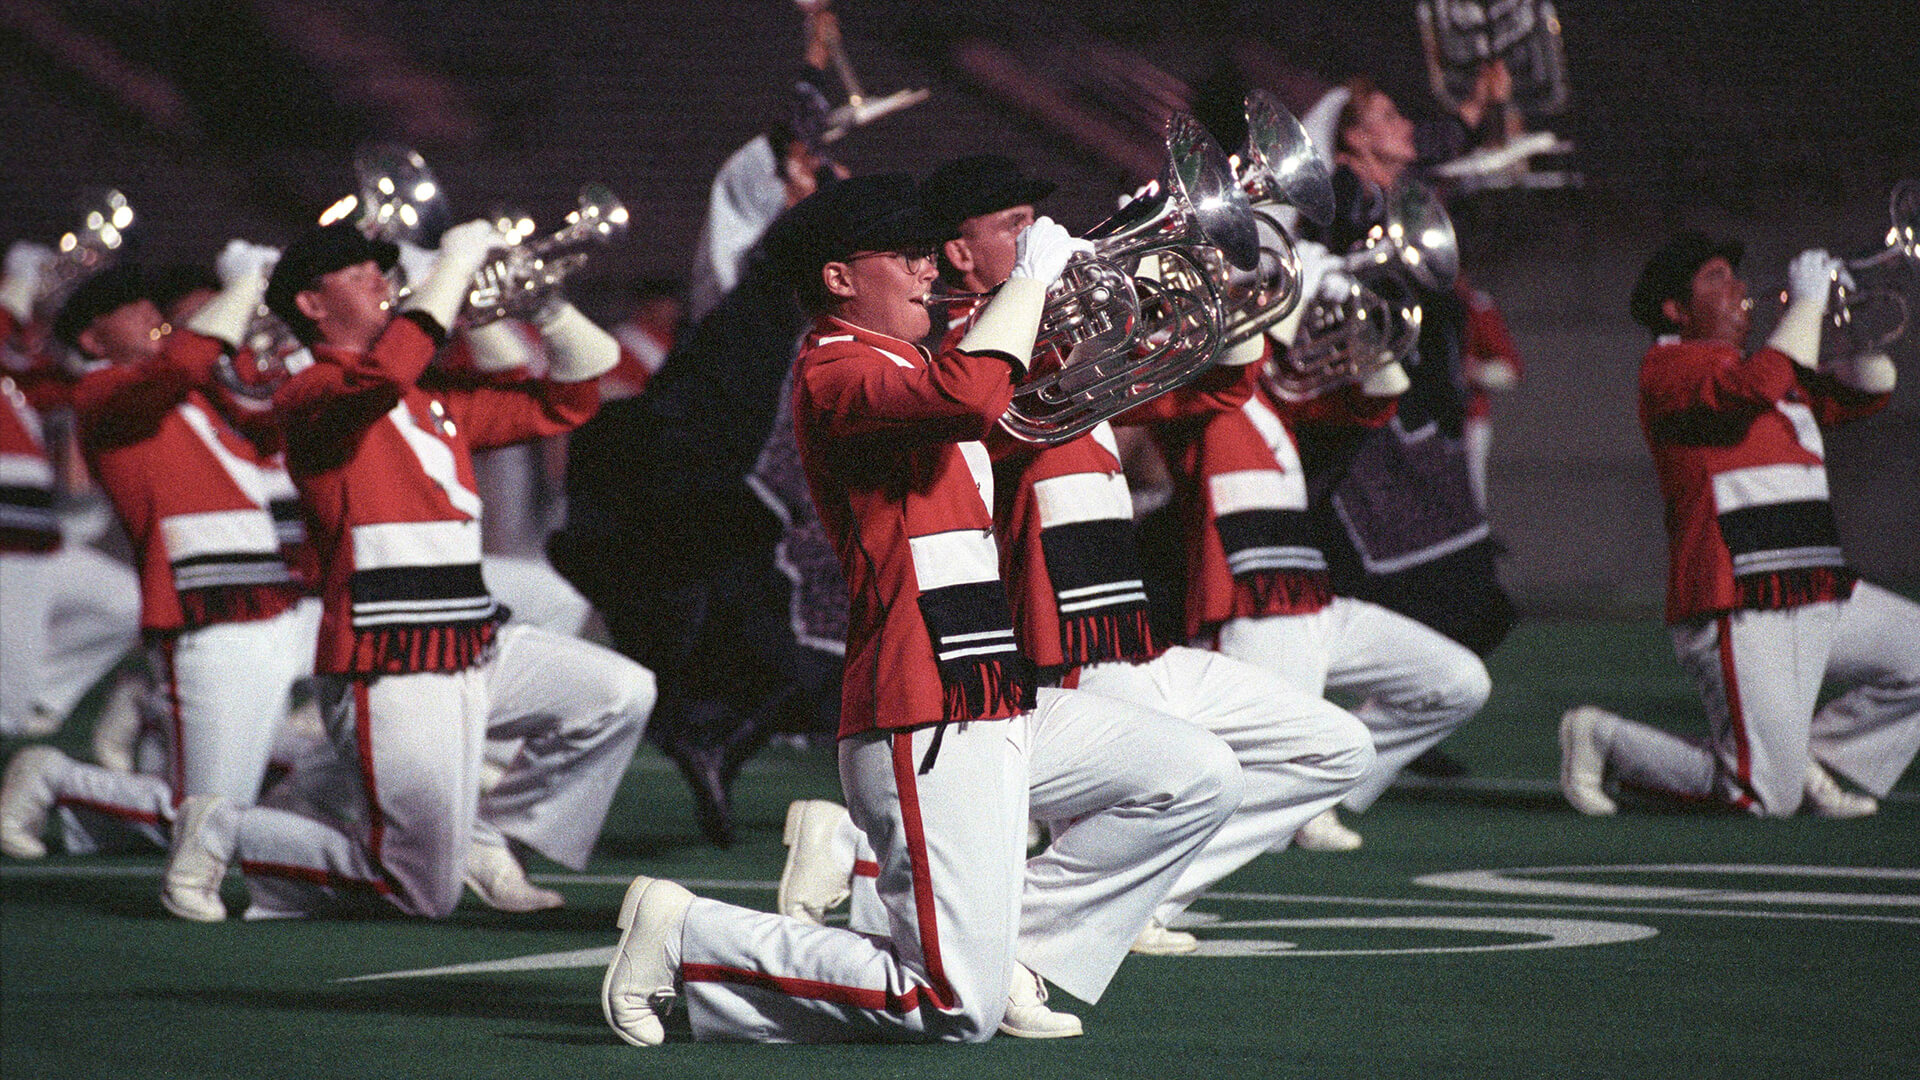 Spotlight of the Week: 1992 Santa Clara Vanguard